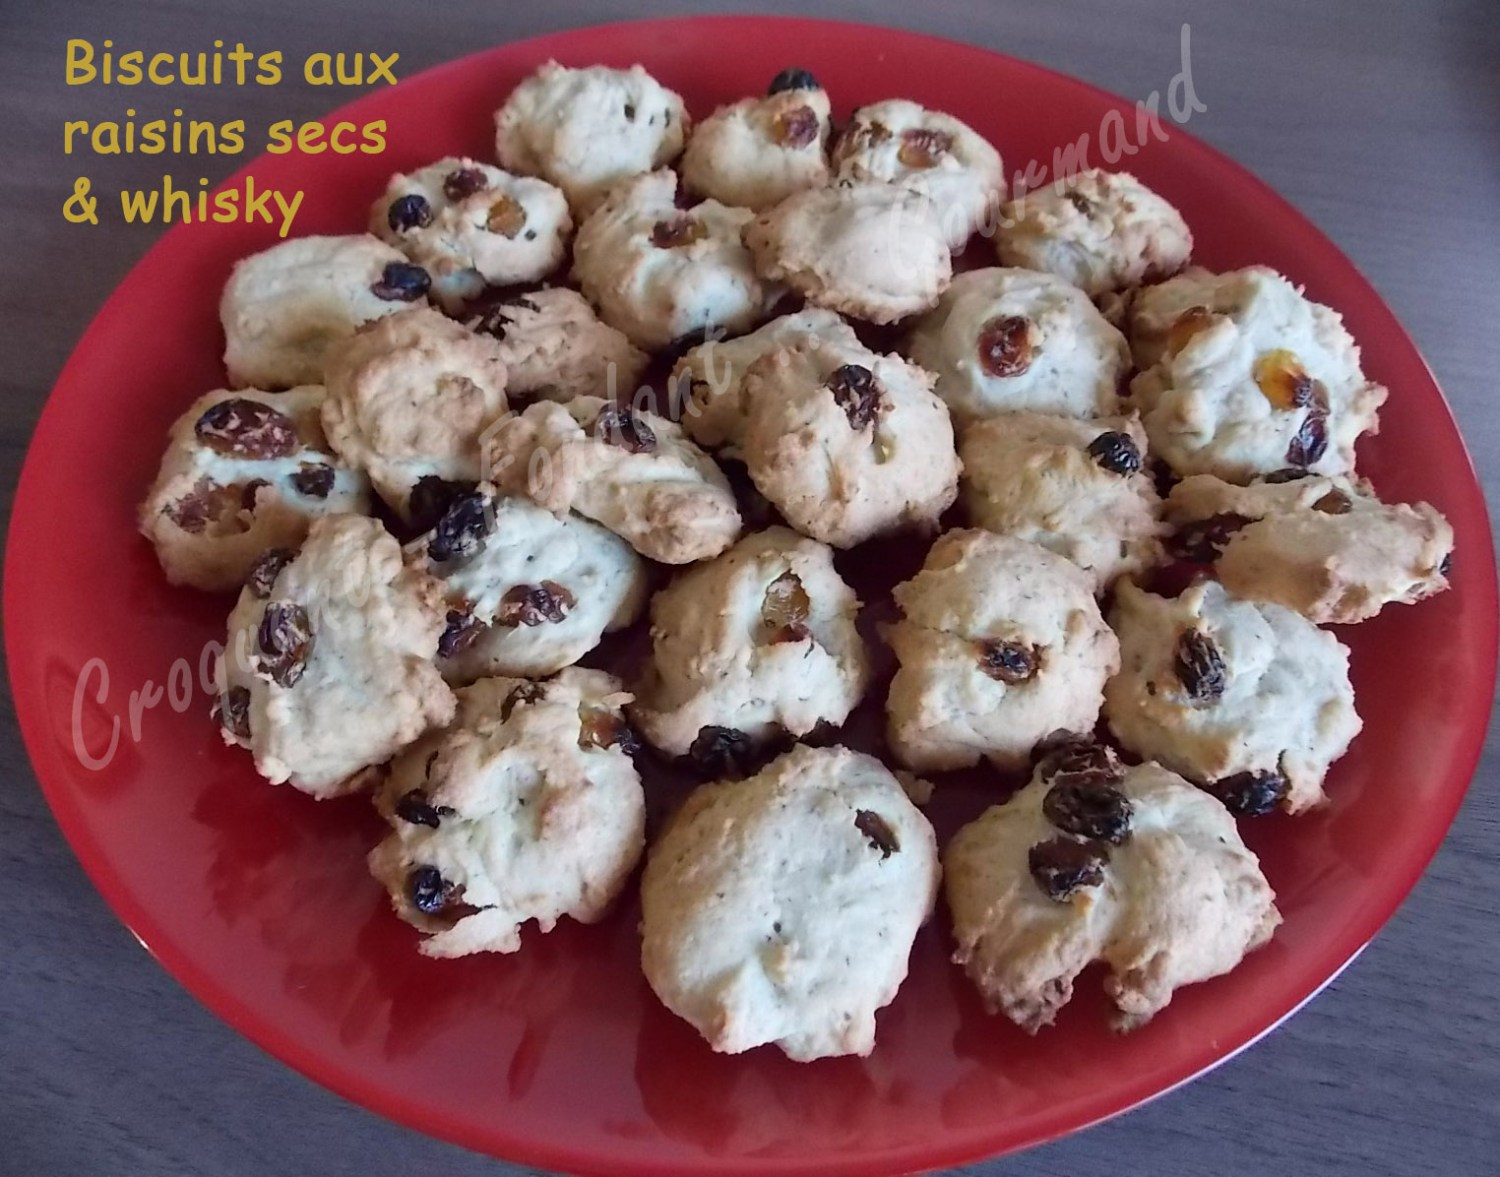 Biscuits aux raisins secs & whiskyDSCN2343_32036